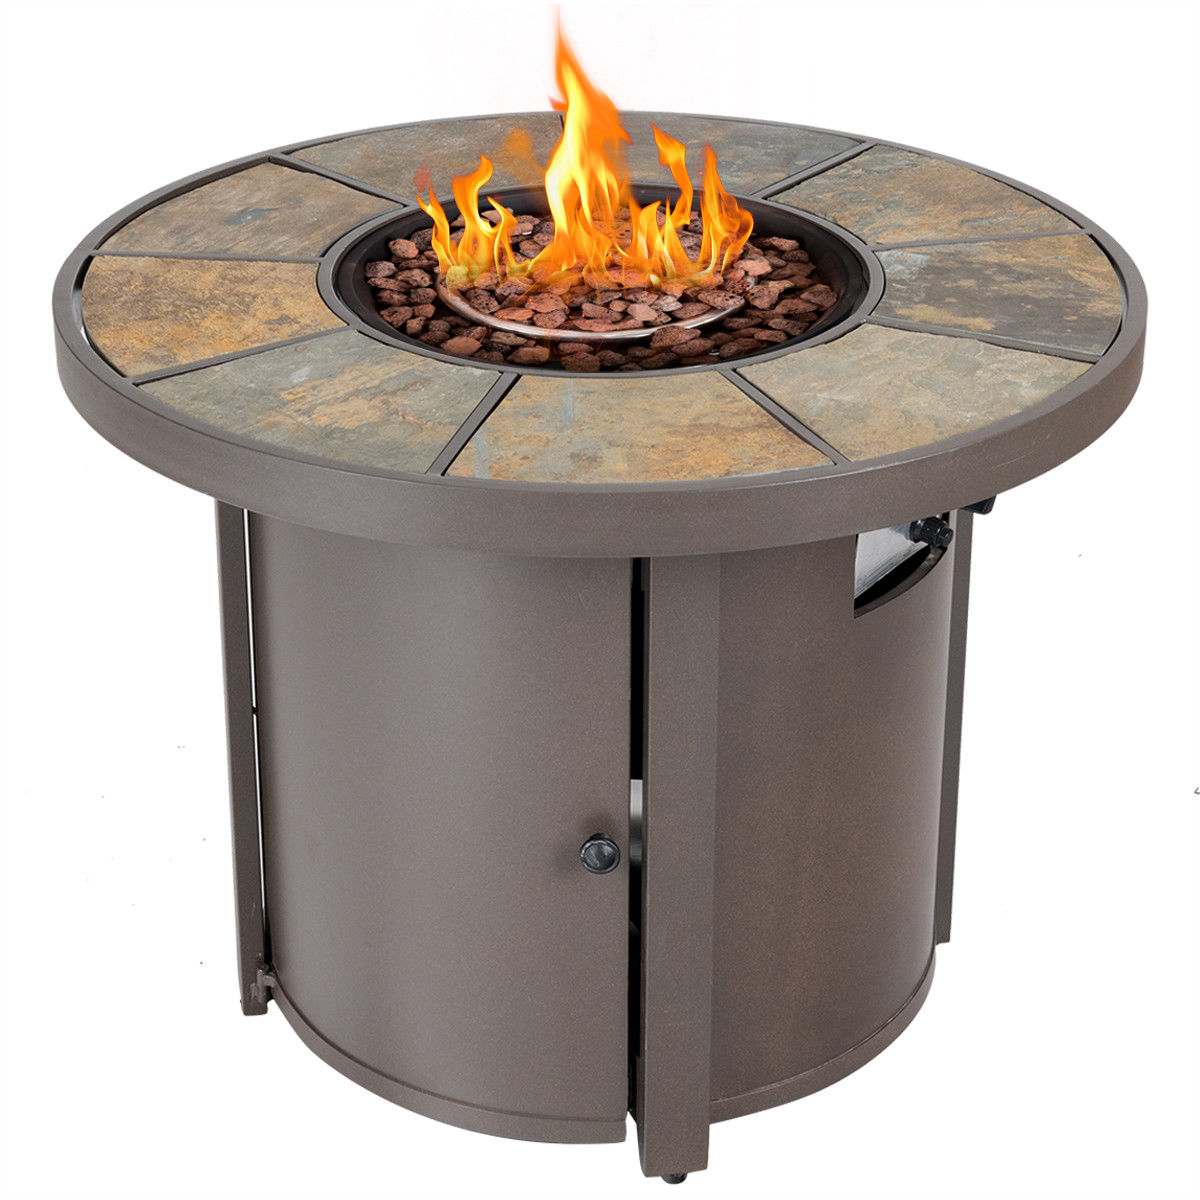 Costway 323939 Round Outdoor Propane Gas Fire Pit Table